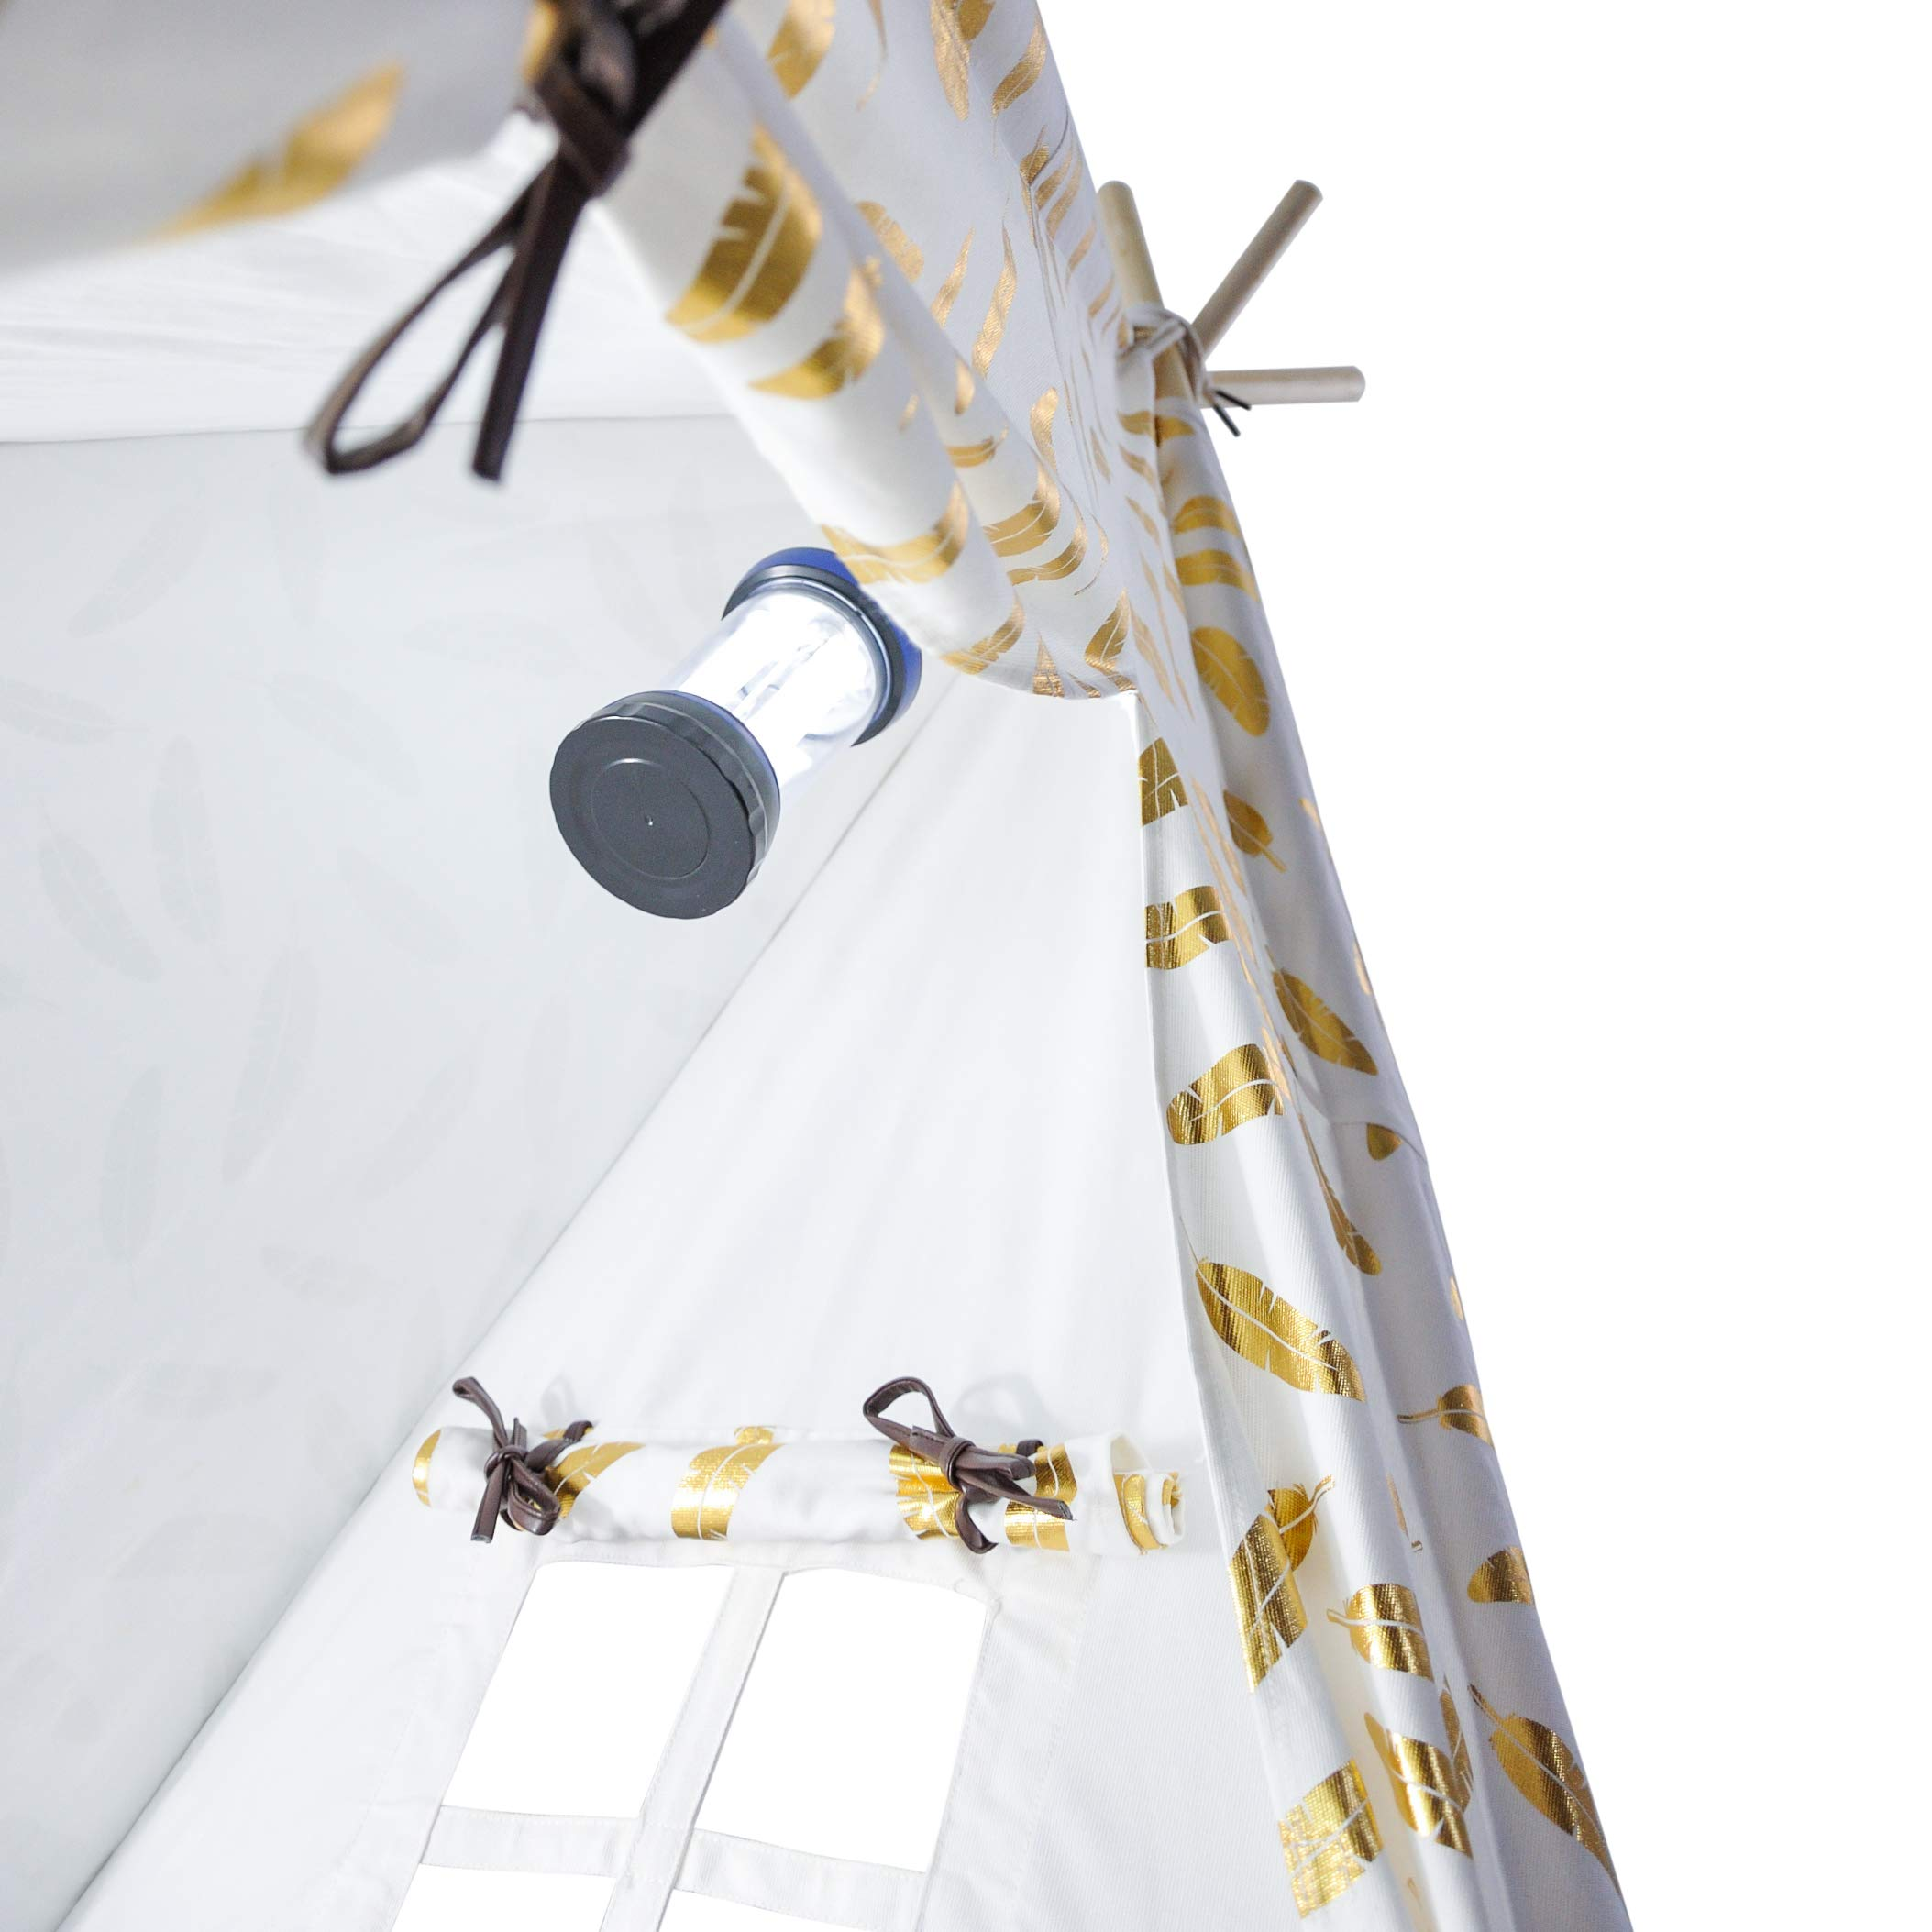 A Mustard Seed Toys Teepee Tent for Boys and Girls, Gold Feathers, Portable Playhouse with Canvas Carrying Case, No Extra Chemicals by A Mustard Seed Toys (Image #6)